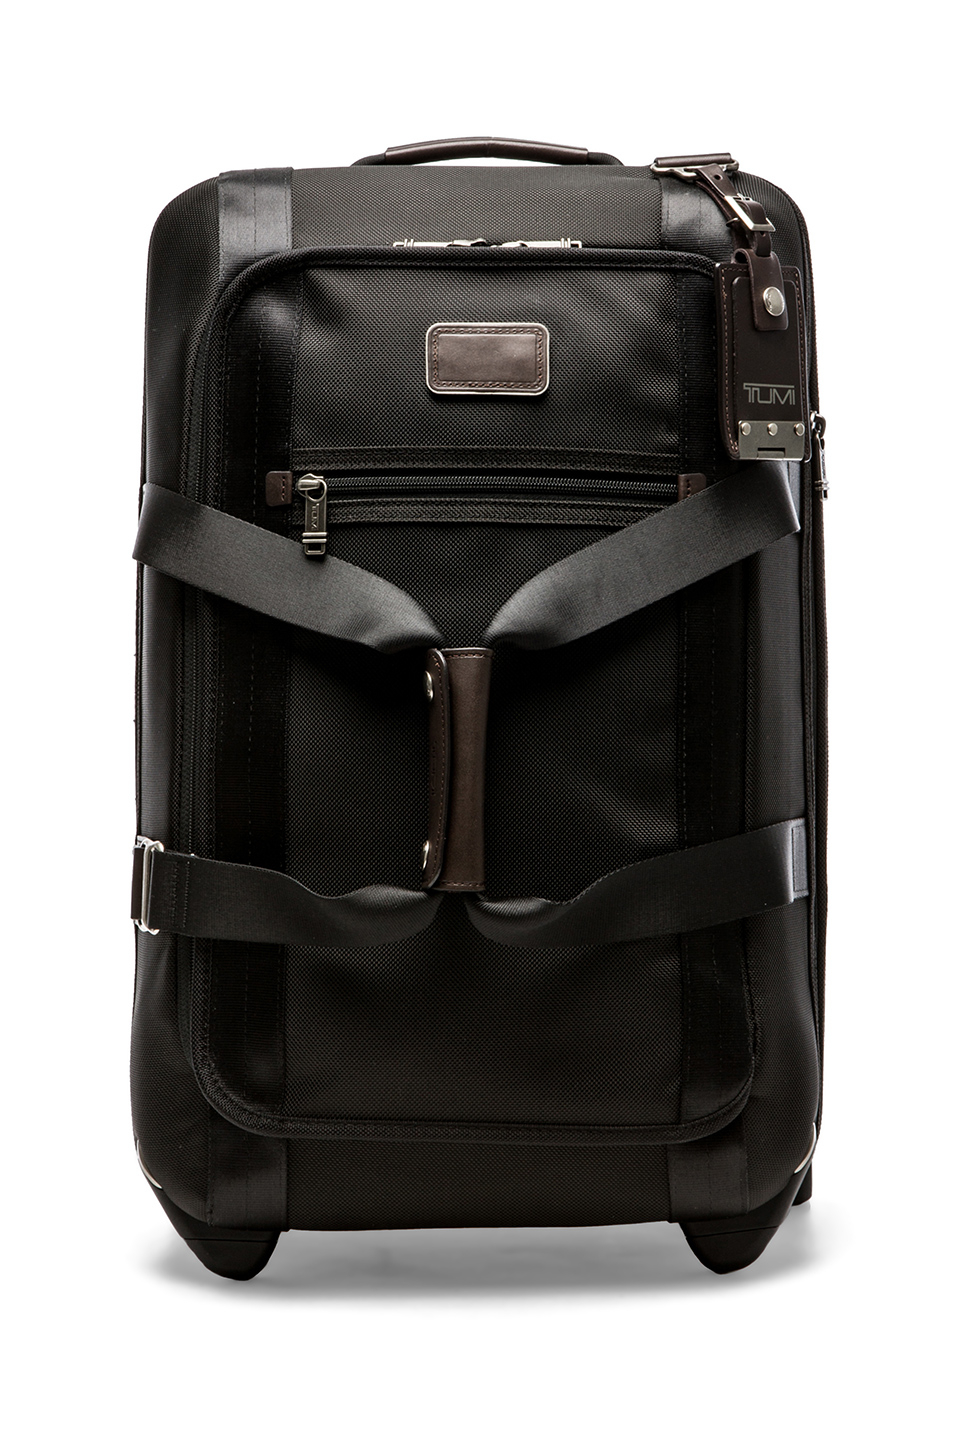 Elegant Tumi Alpha Bravo for Cool Travel Bag Ideas: Tumi Alpha Bravo | Tumi Alpha Bravo Knox Backpack Black | Tumi Sling Bag